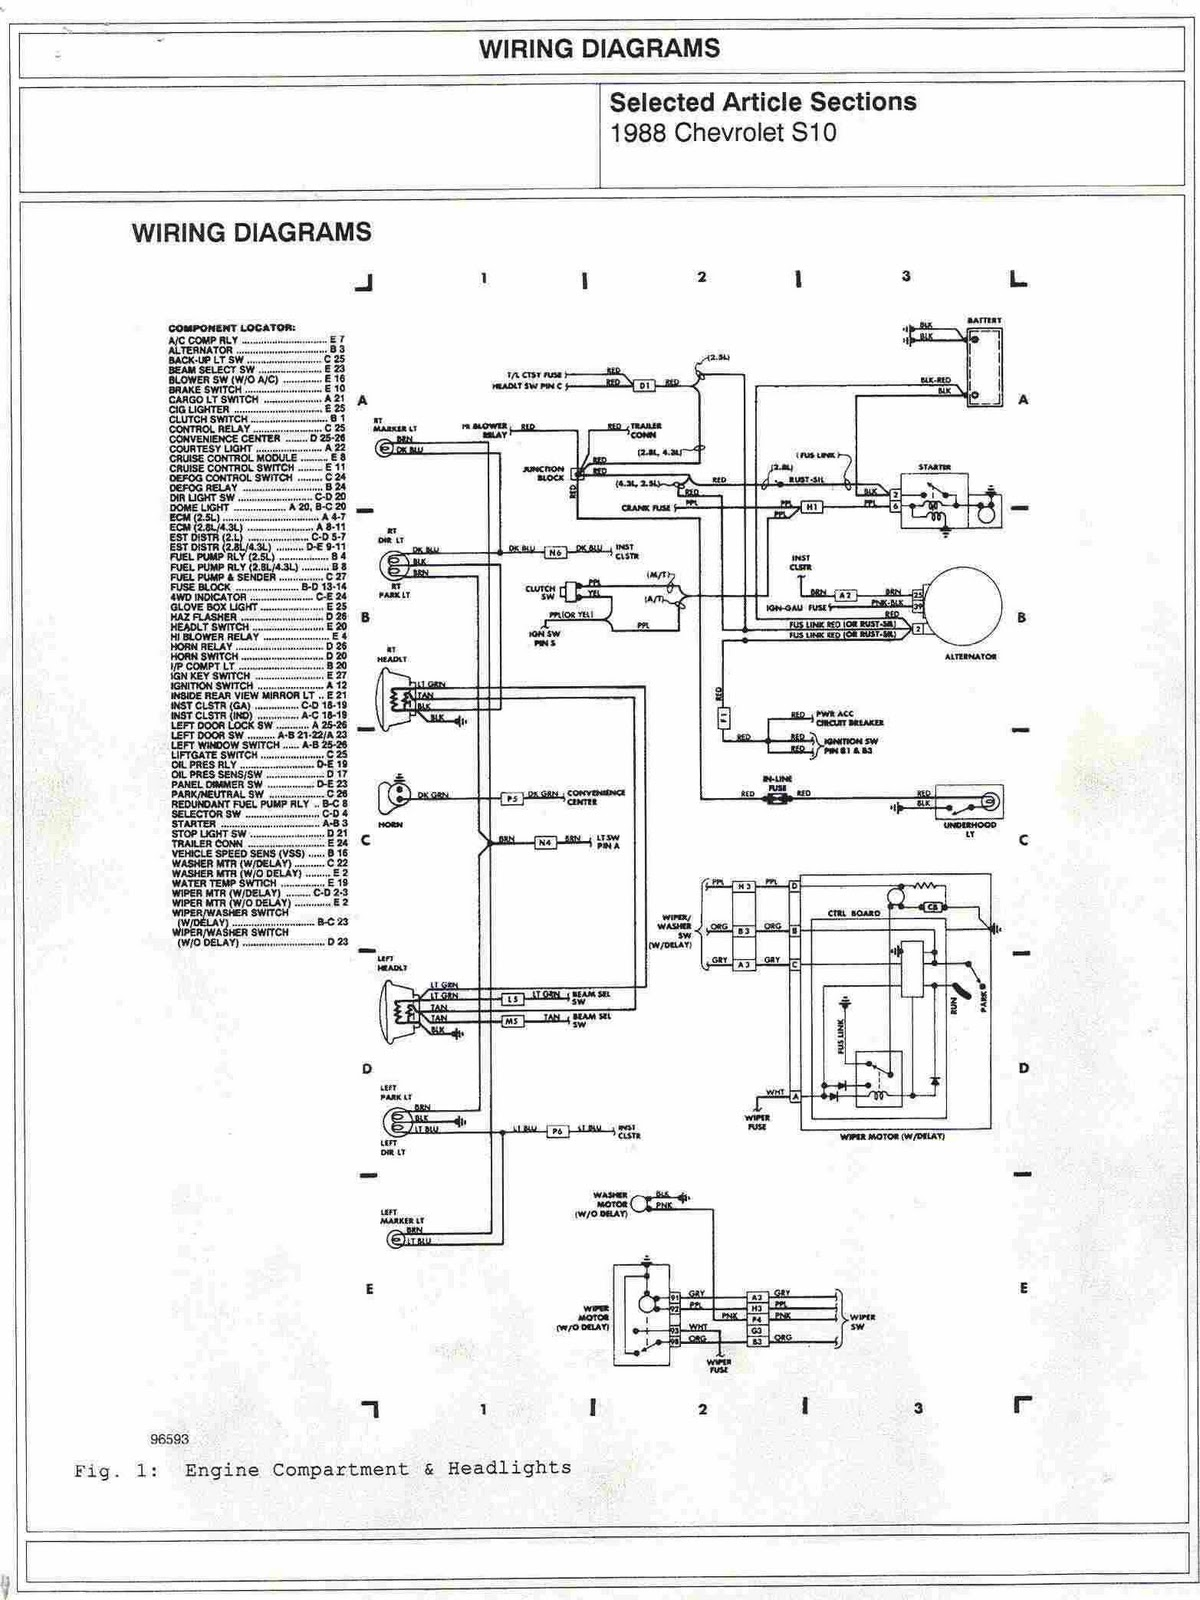 1988+Chevrolet+S10+Engine+Compartment+and+Headlights+Wiring+Diagrams 1988 chevrolet s10 engine compartment and headlights wiring s10 headlight wiring diagram at honlapkeszites.co